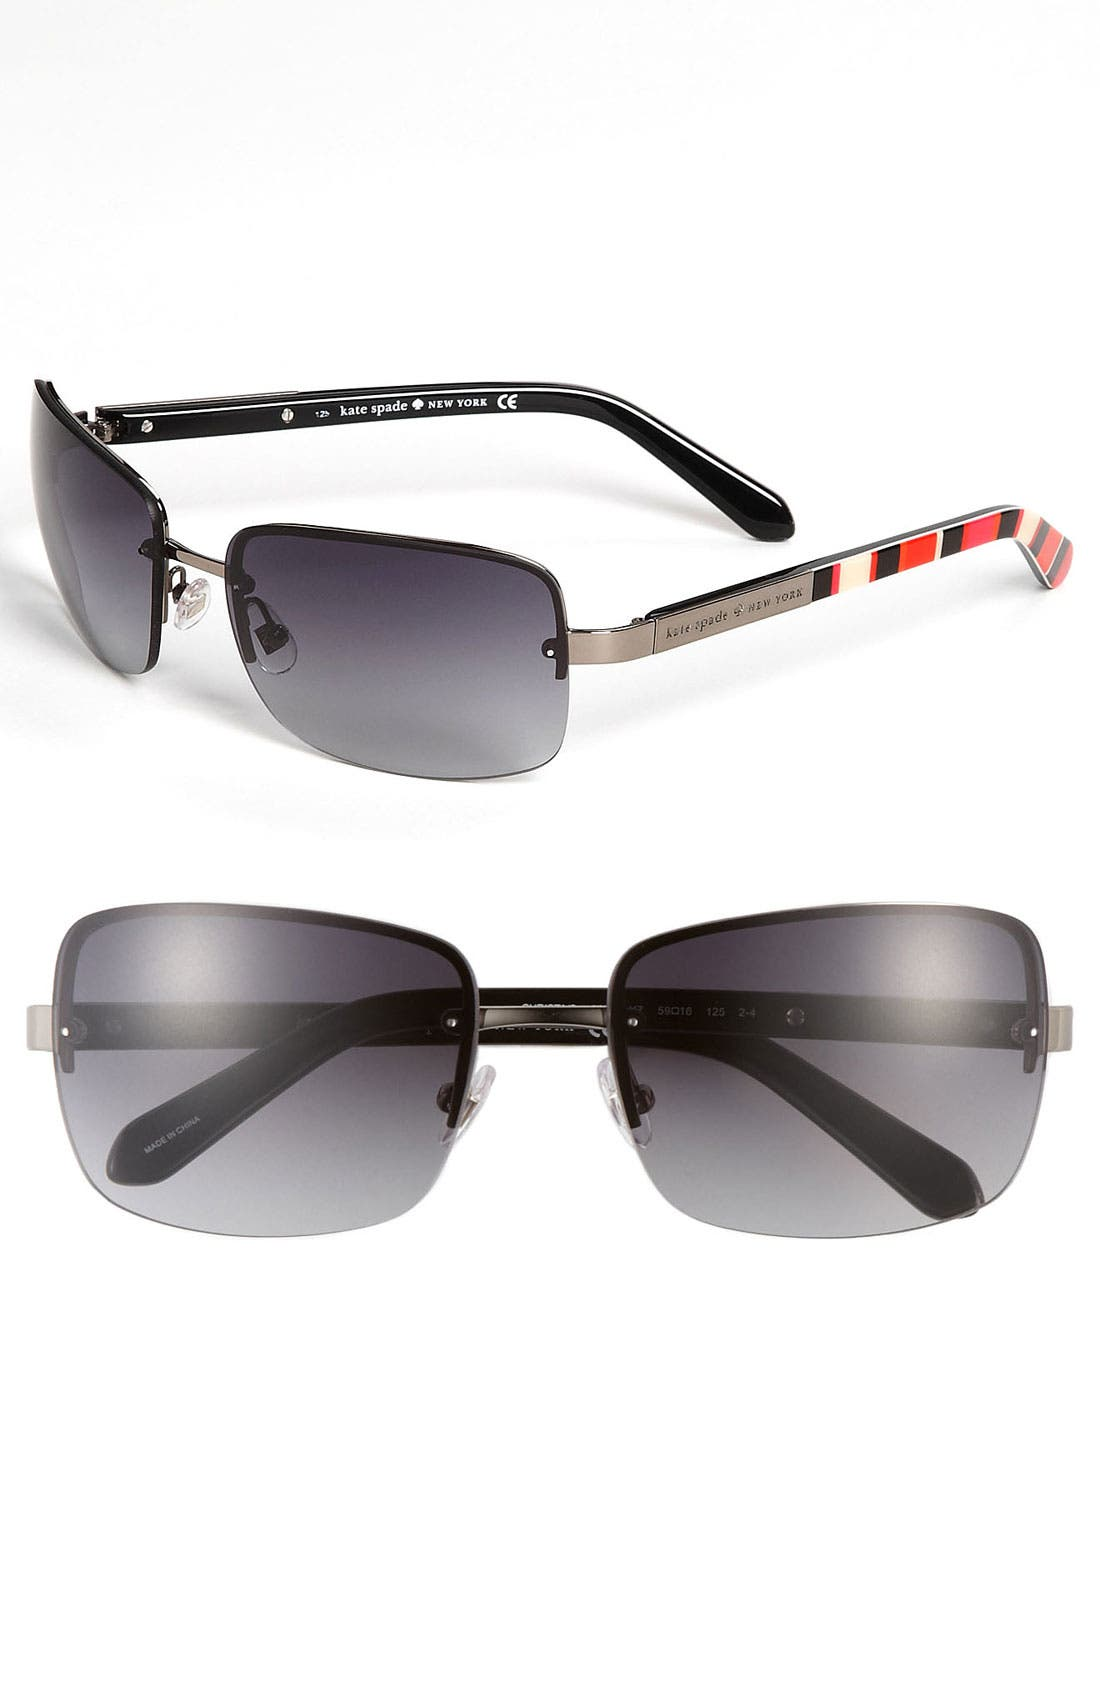 Alternate Image 1 Selected - kate spade new york 'christa' 59mm rimless sunglasses